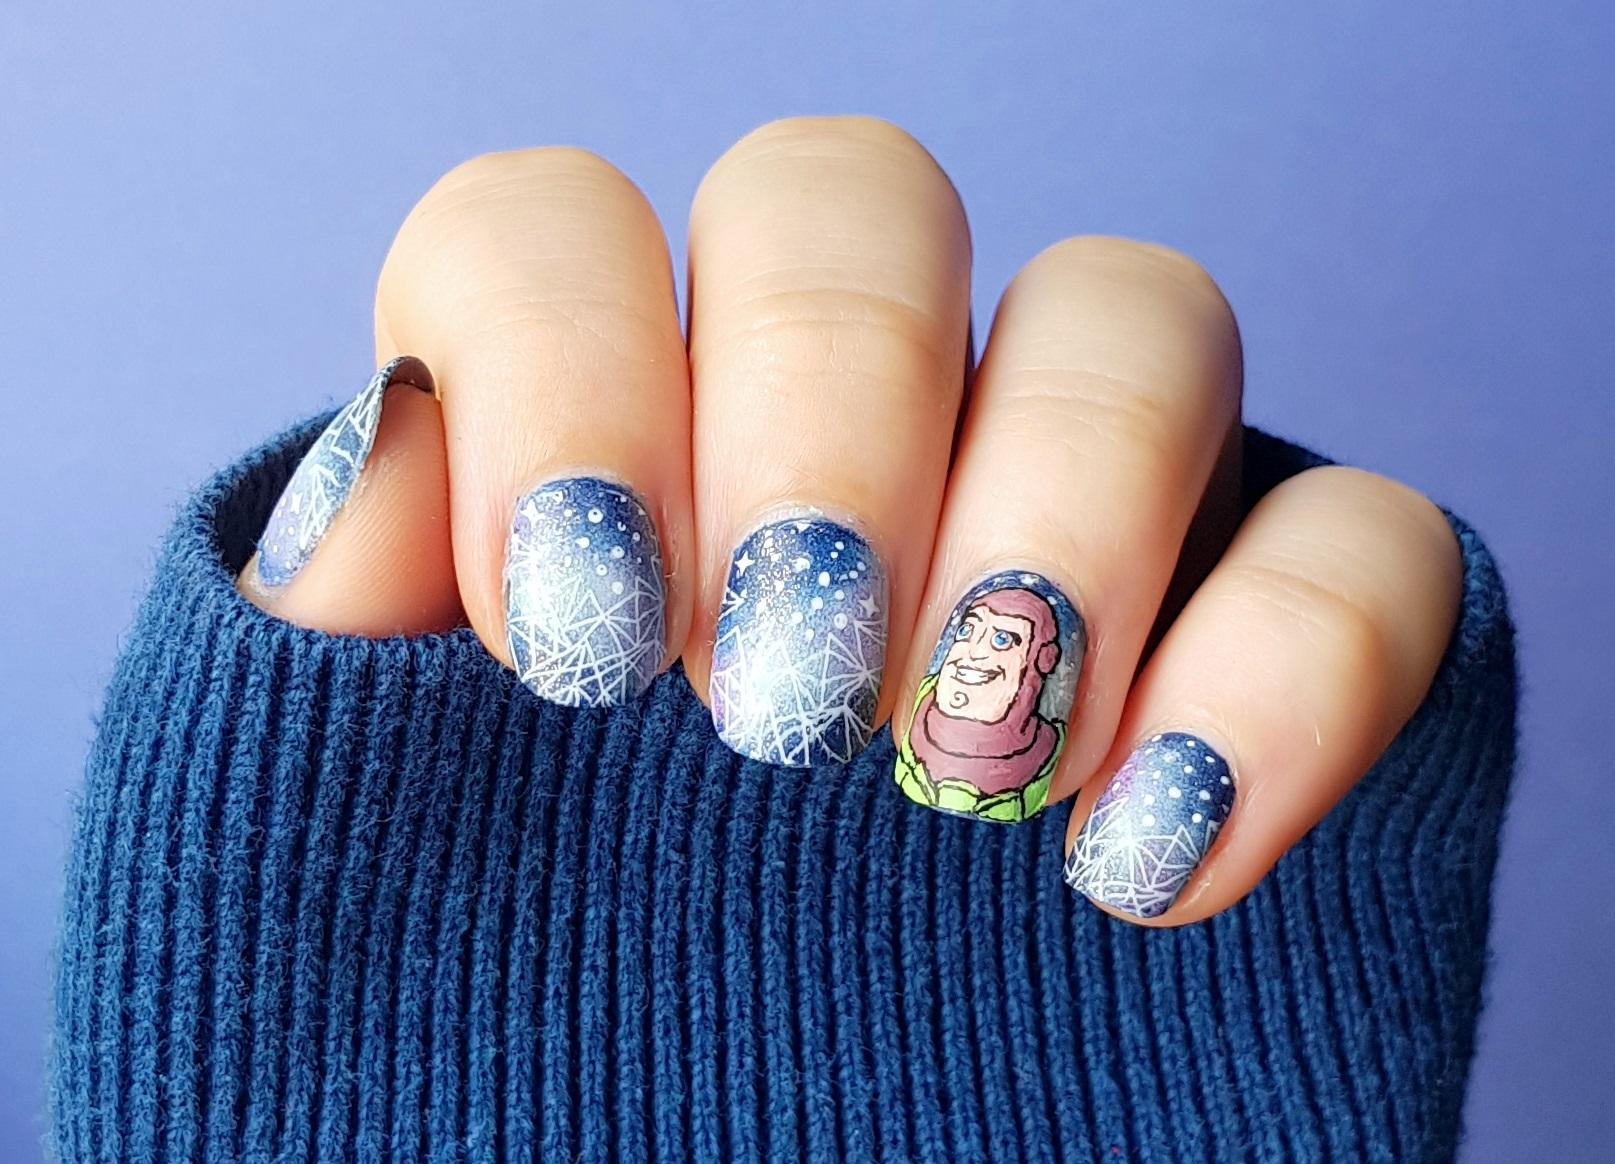 Buzz Lightyear Nailart